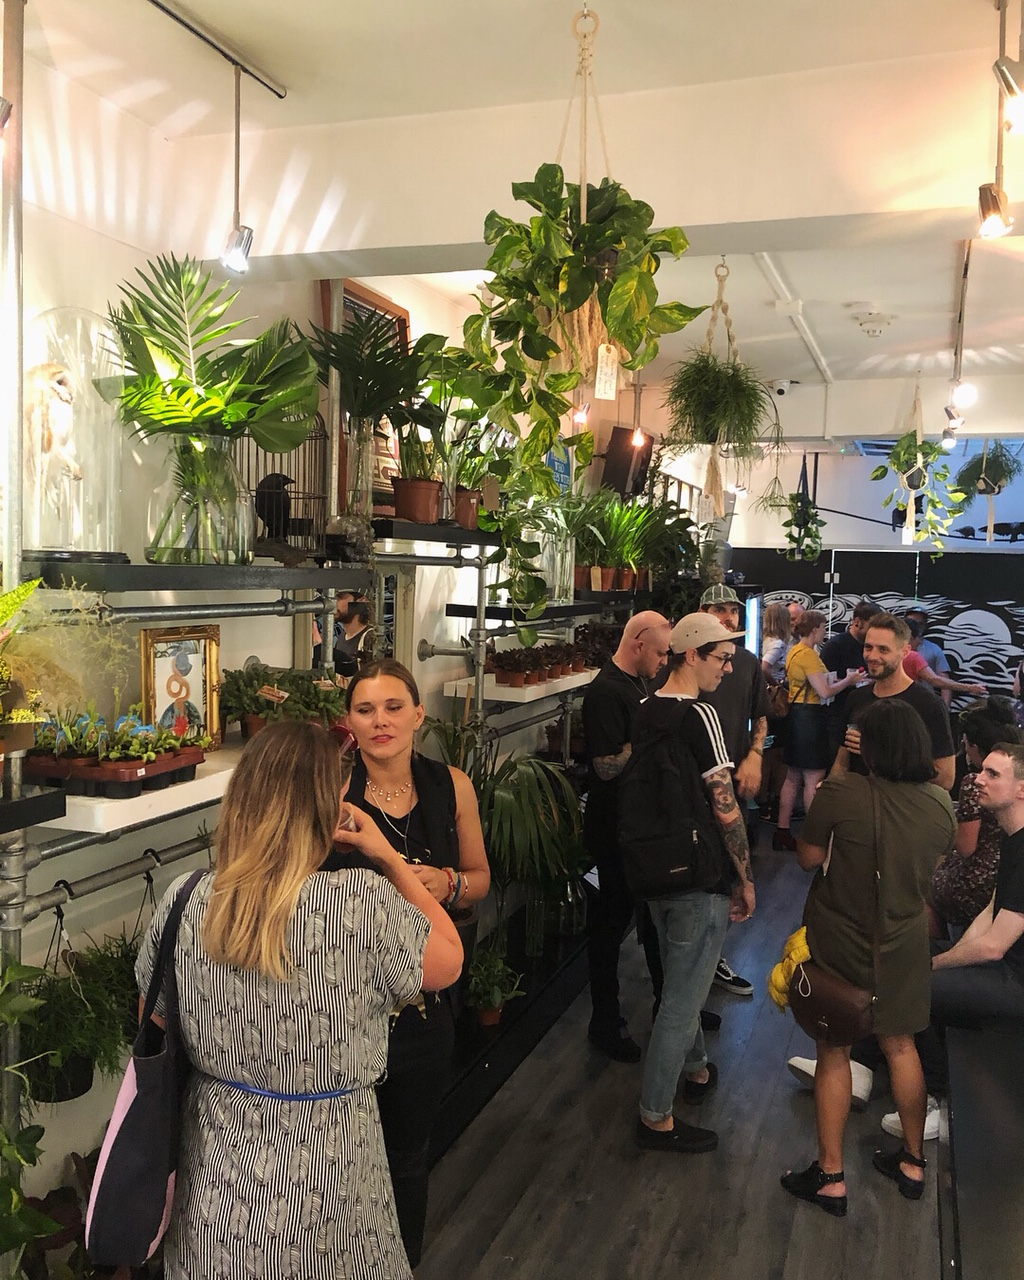 trailing pothos and foliage displays. We turned a tattoo parlour into a pop up plant shop.